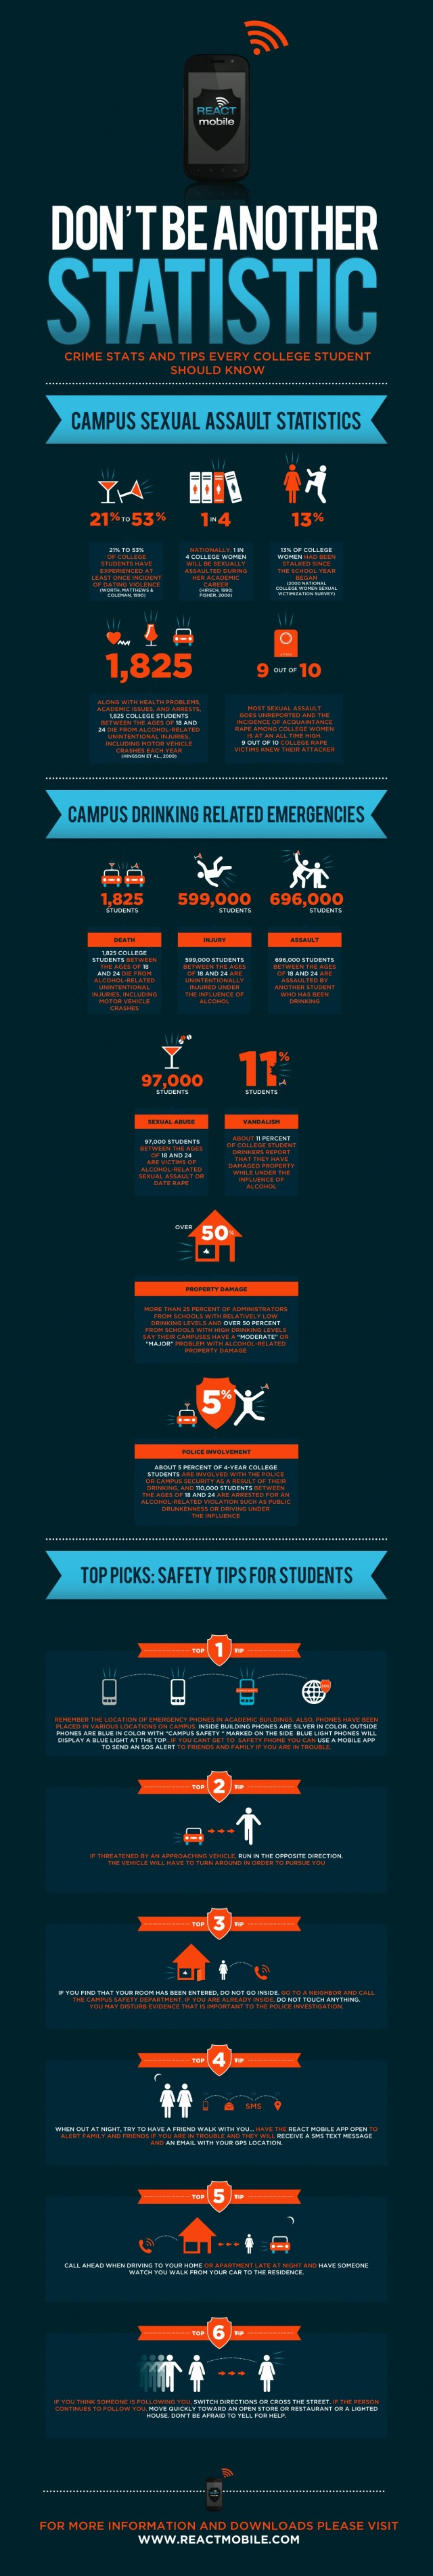 Alarming Stats On Campus Assault Bring Us Back To Reality [Infographic]